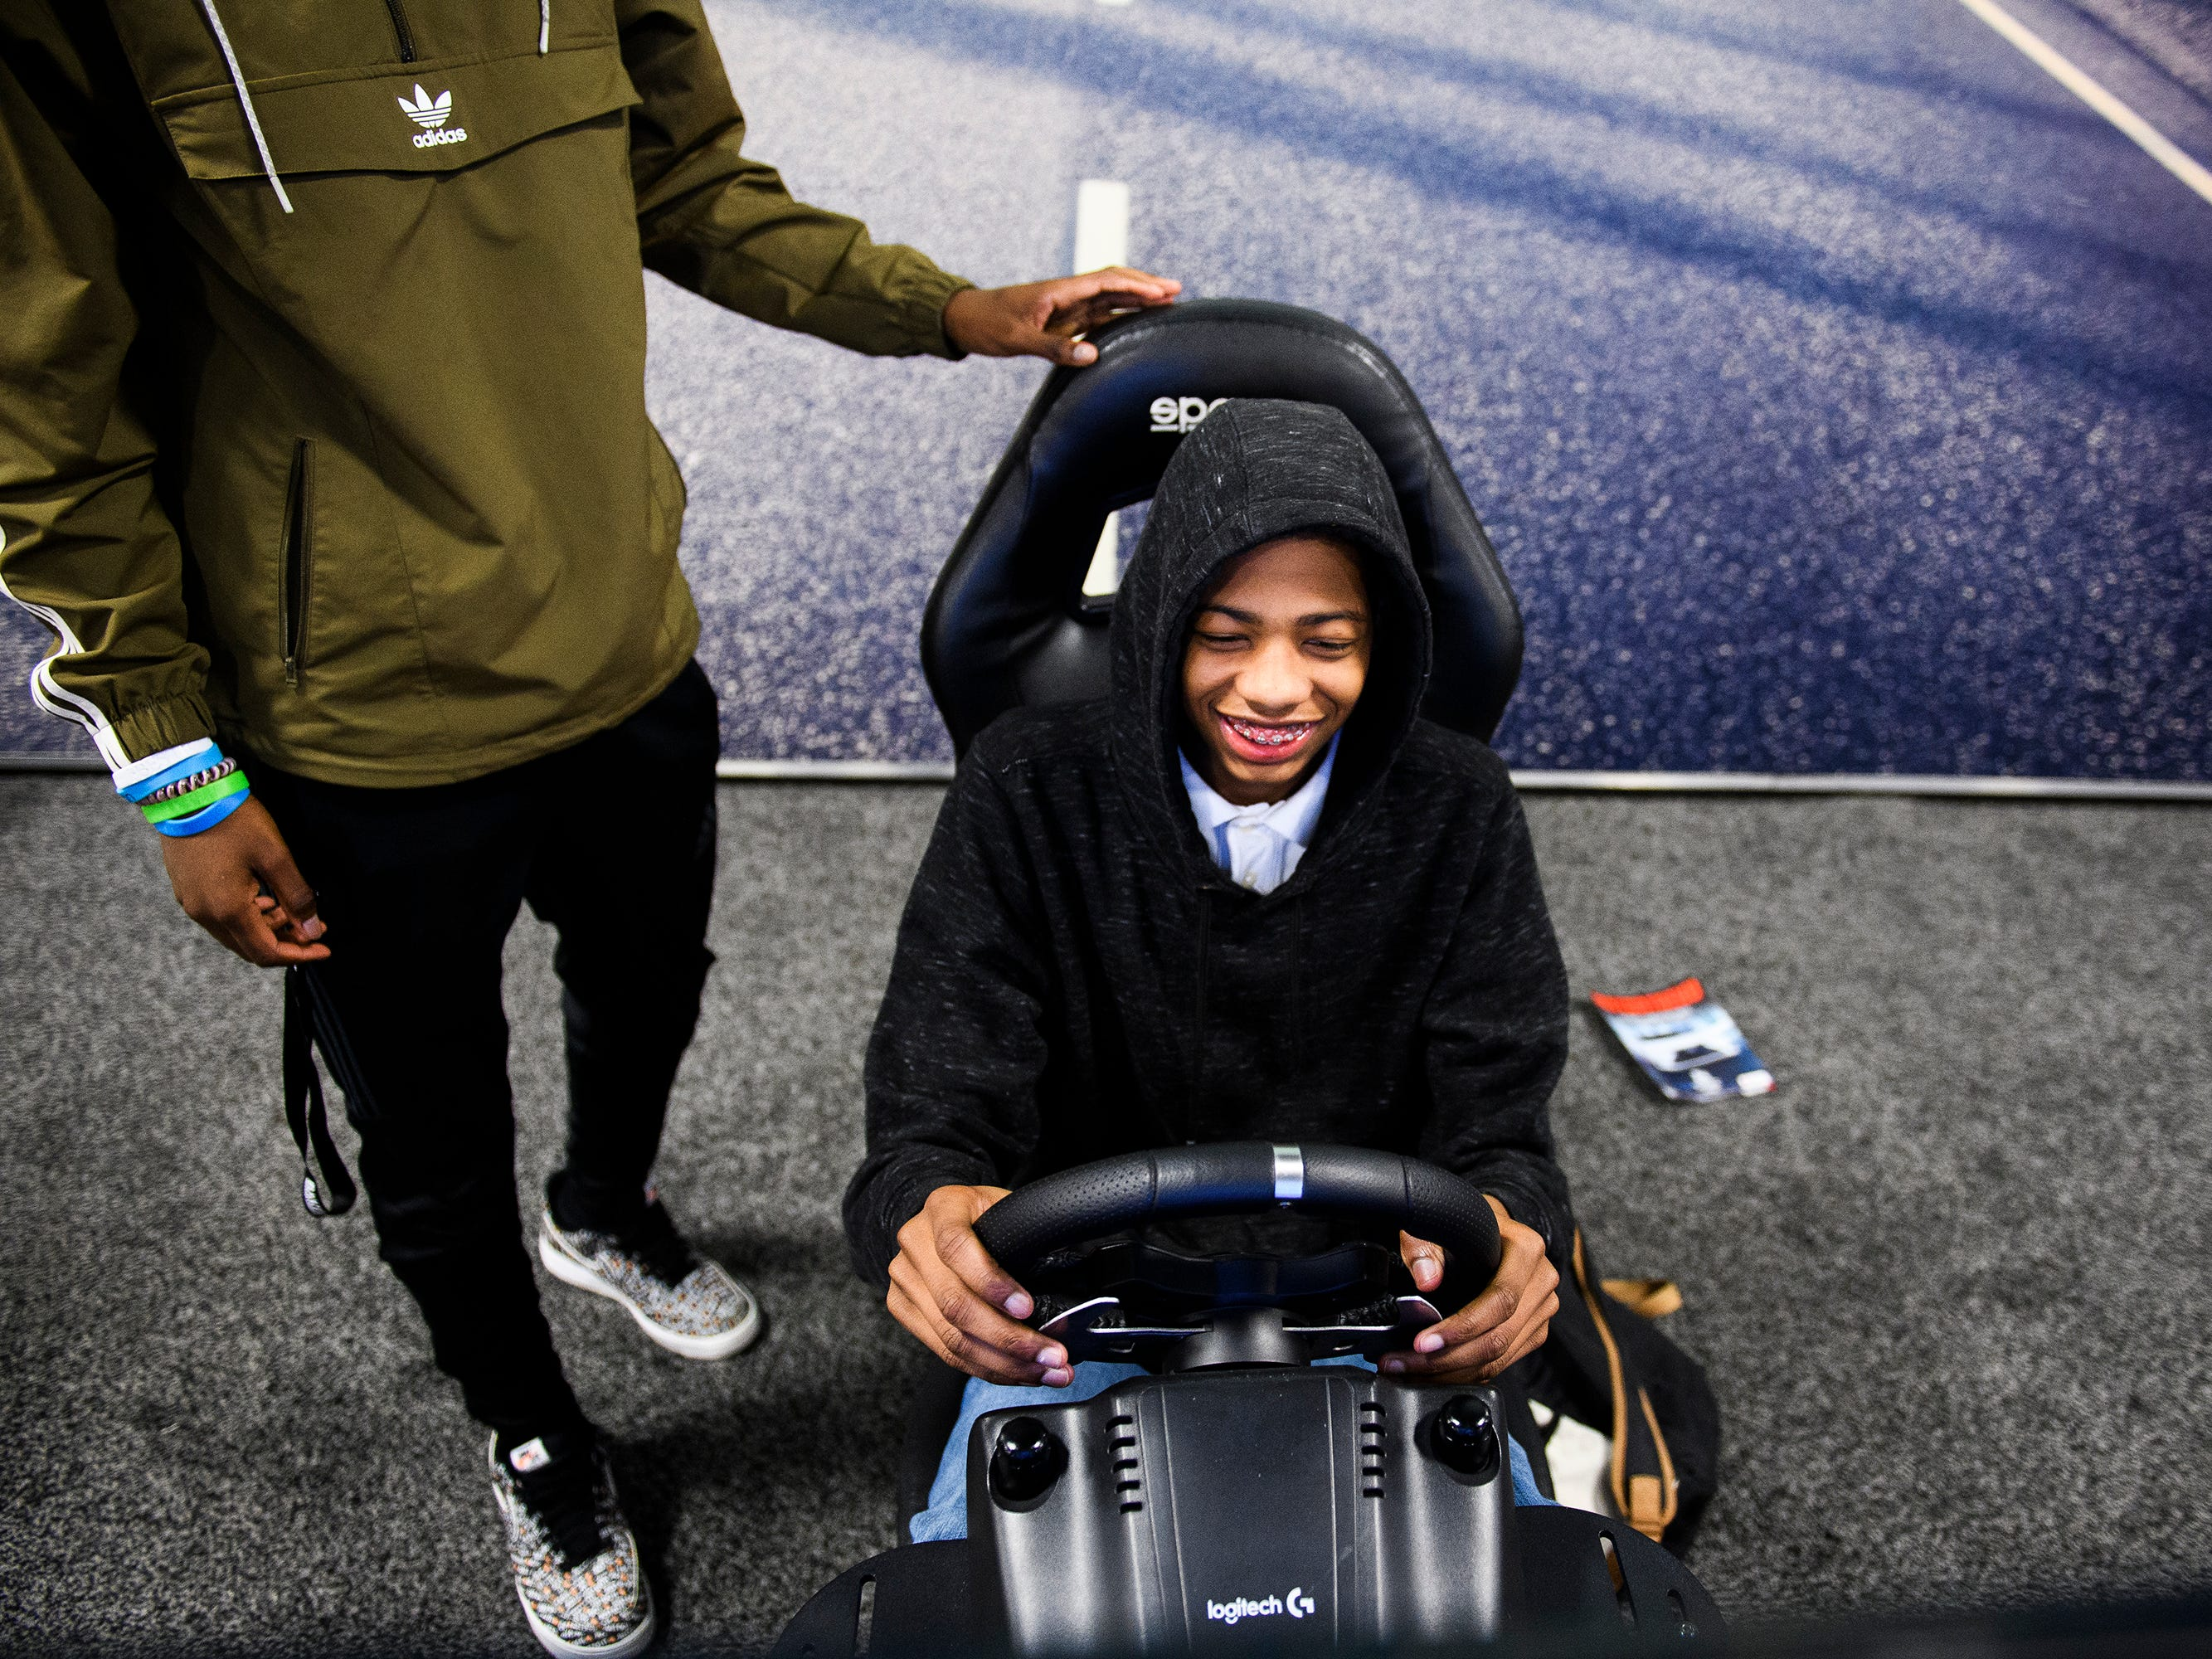 Tydriques Sullivan plays a racing game during the South Carolina International Auto Show Friday, Jan. 11, 2019 at the Greenville Convention Center.